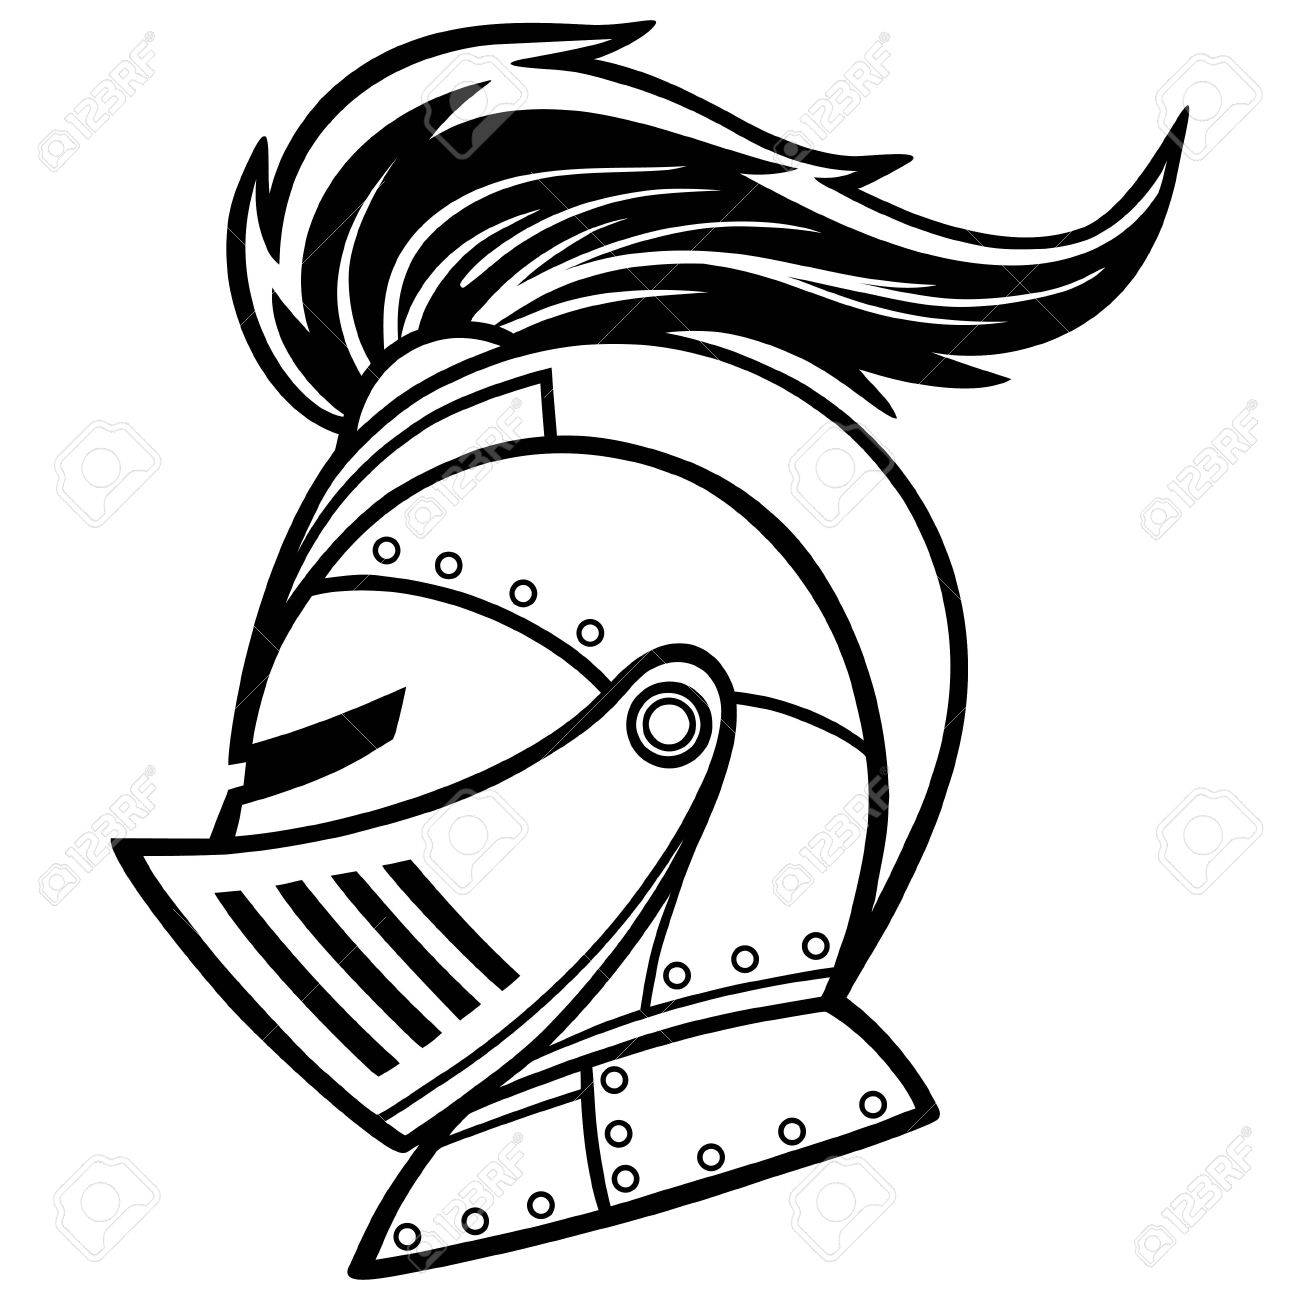 1300x1300 Knight Line Art Royalty Free Cliparts, Vectors, And Stock